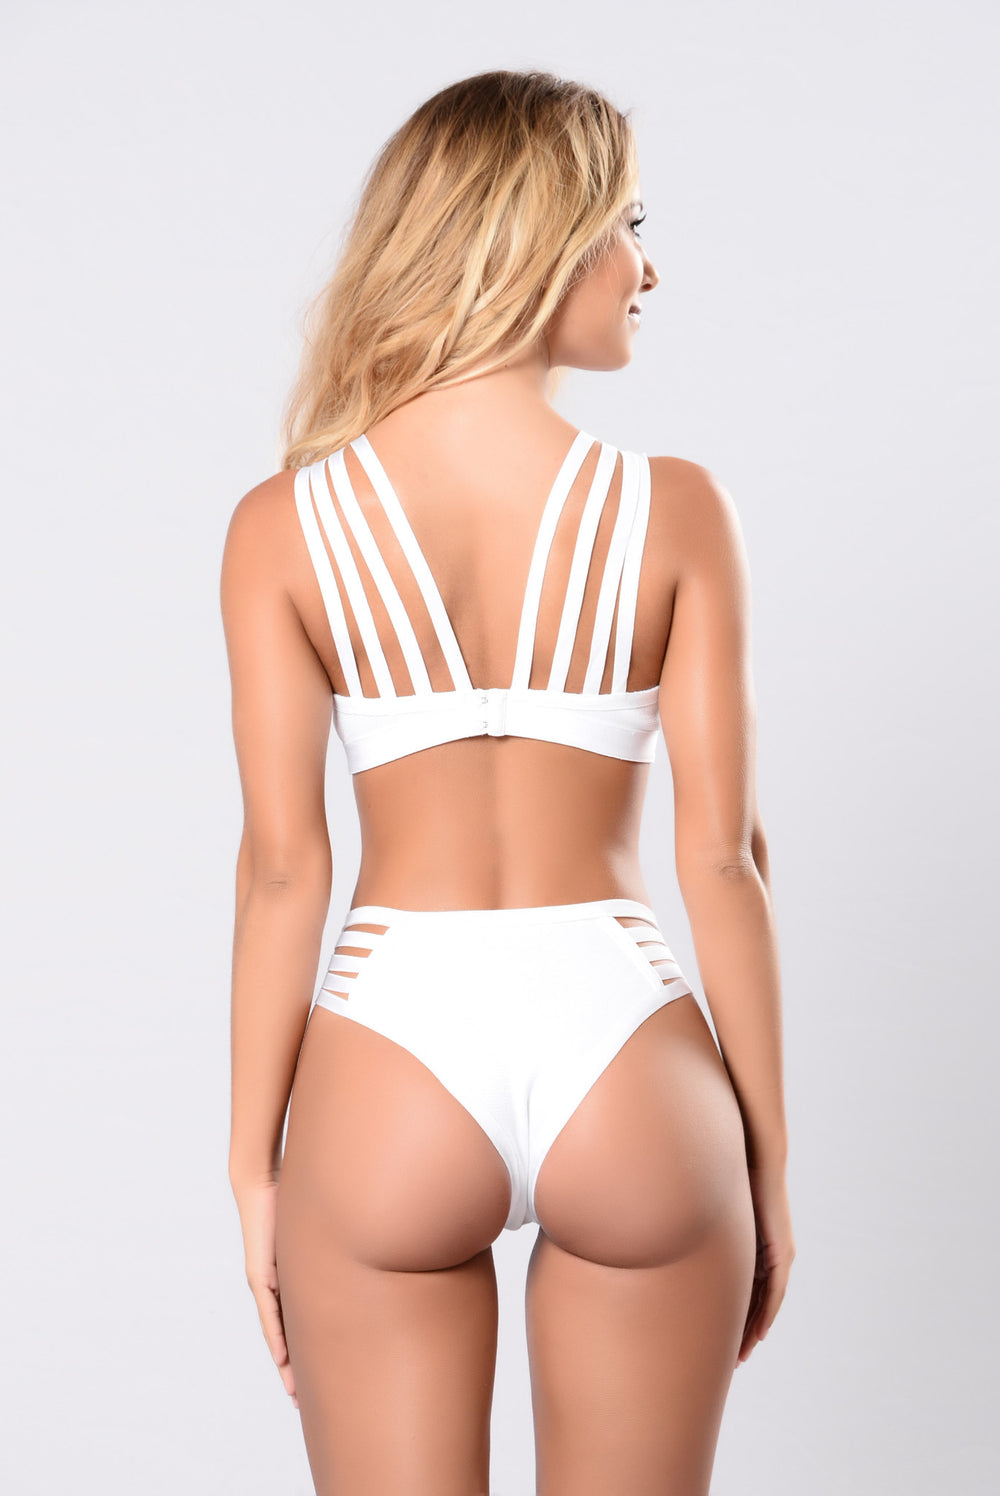 Savanna Swimwear Bandage Monokini - White